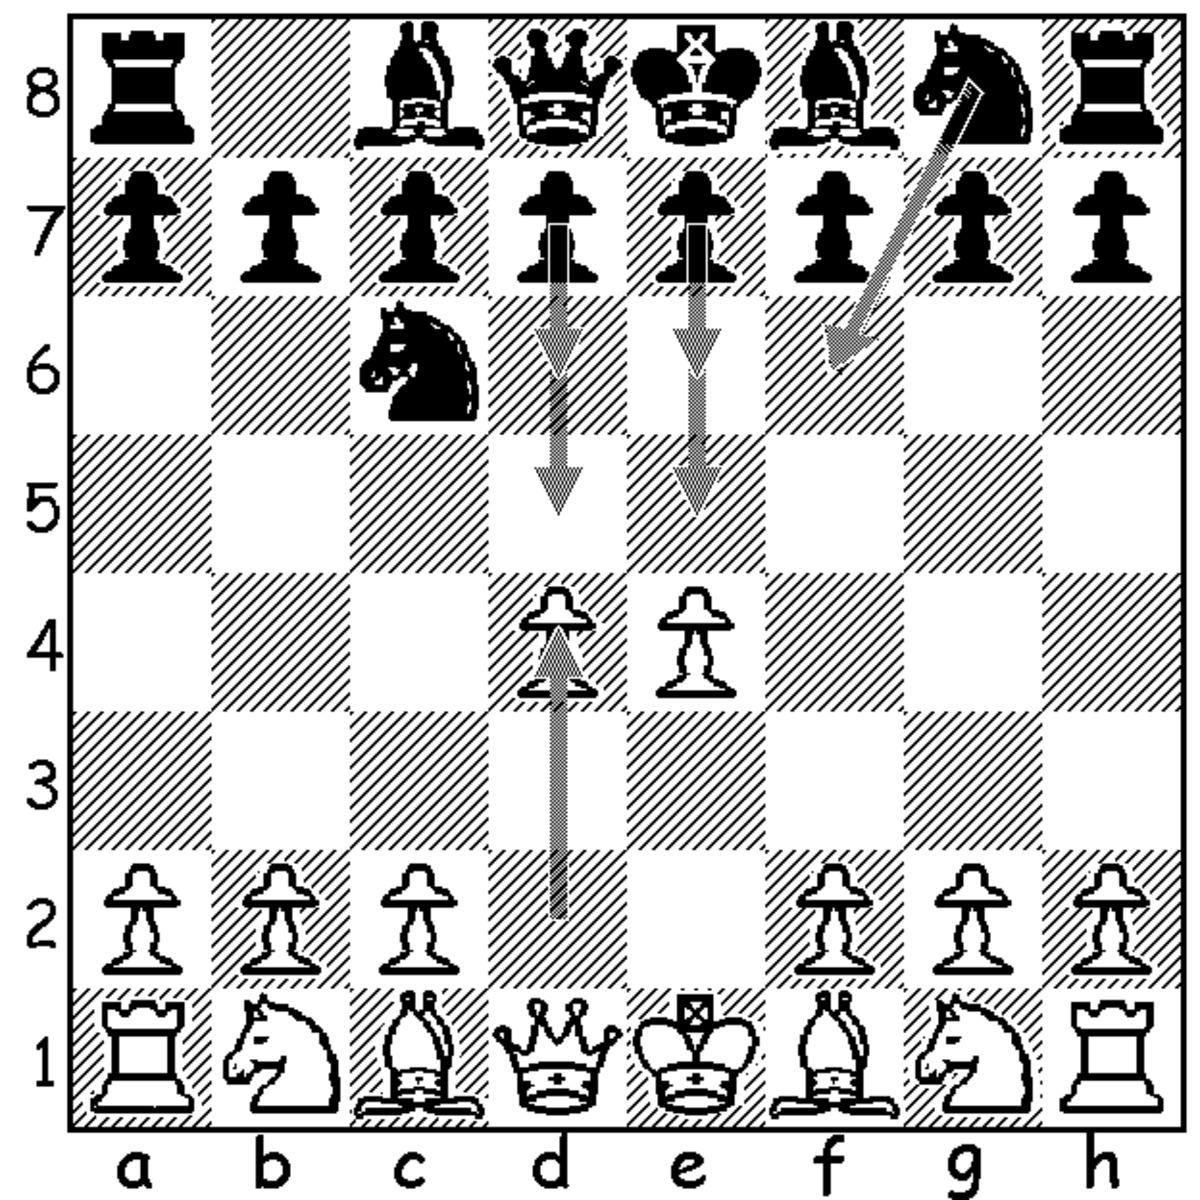 This diagram shows black's five most popular responses to 2.d4 in the Nimzovich Defense. In order of popularity, they are, 2...d5, 2...e5, 2...d6, 2...e6, and 2...Nf6.